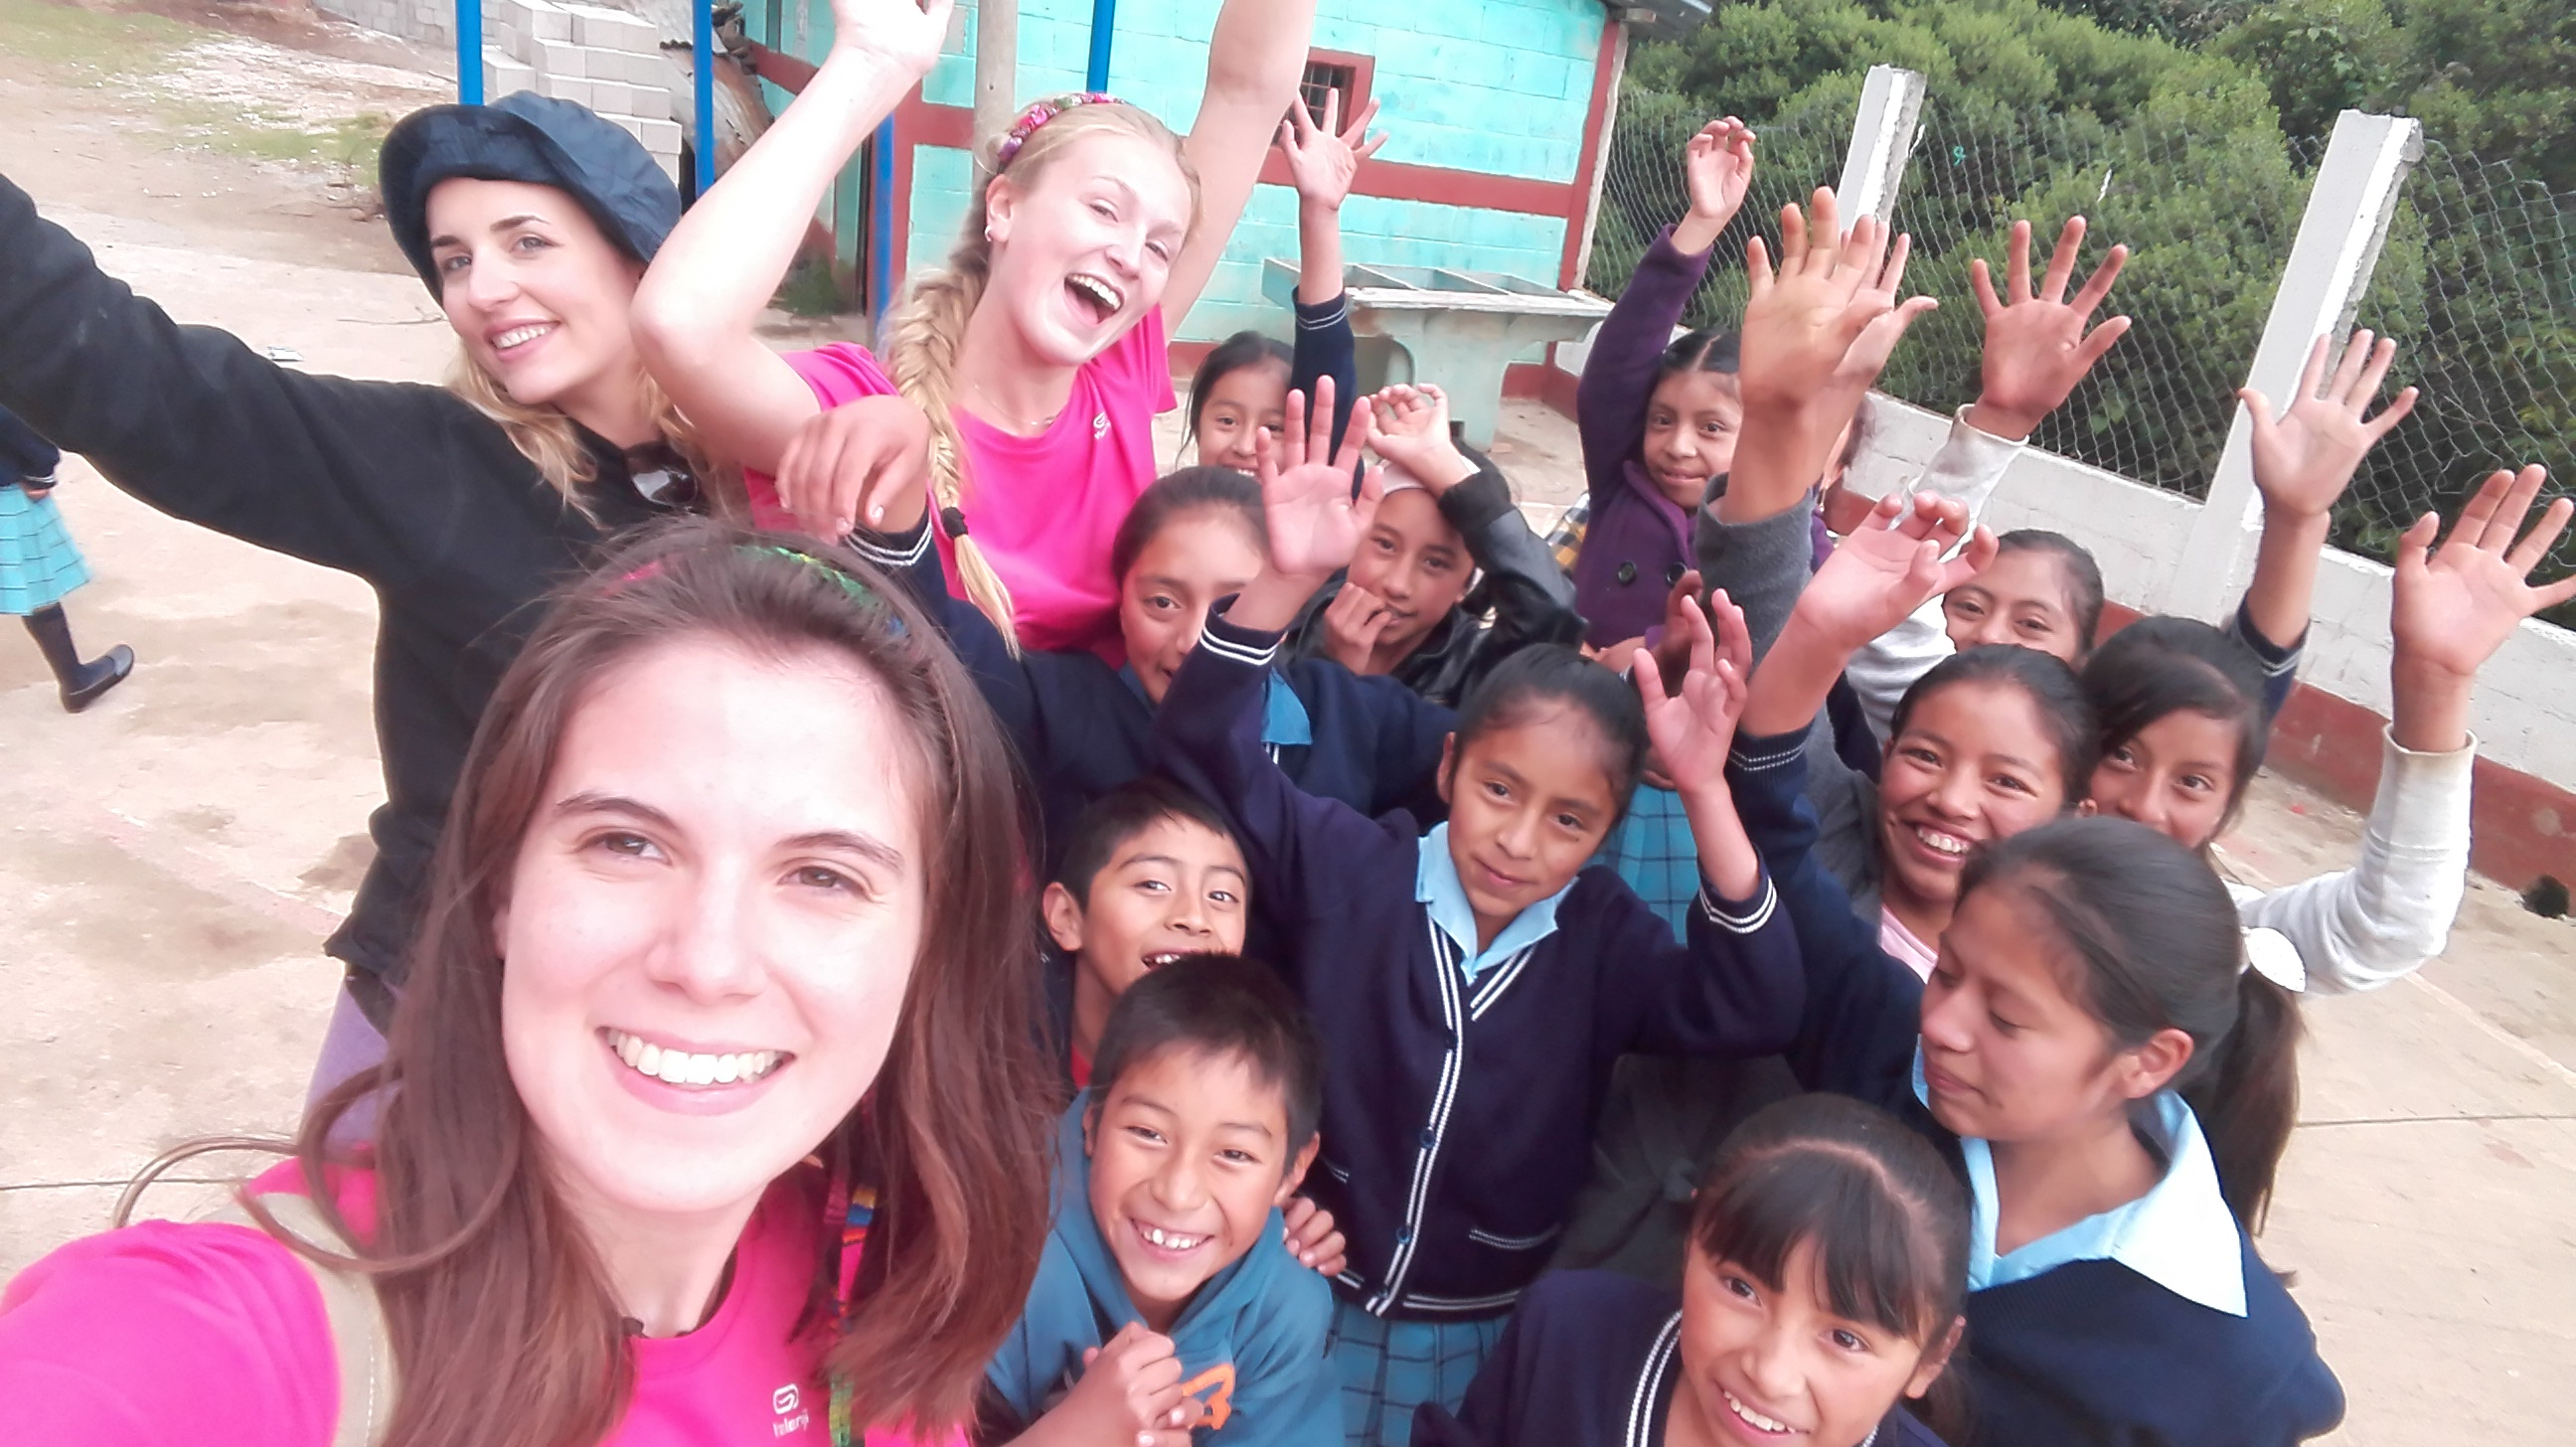 This summer I volunteered at the work camp in Guatemala.